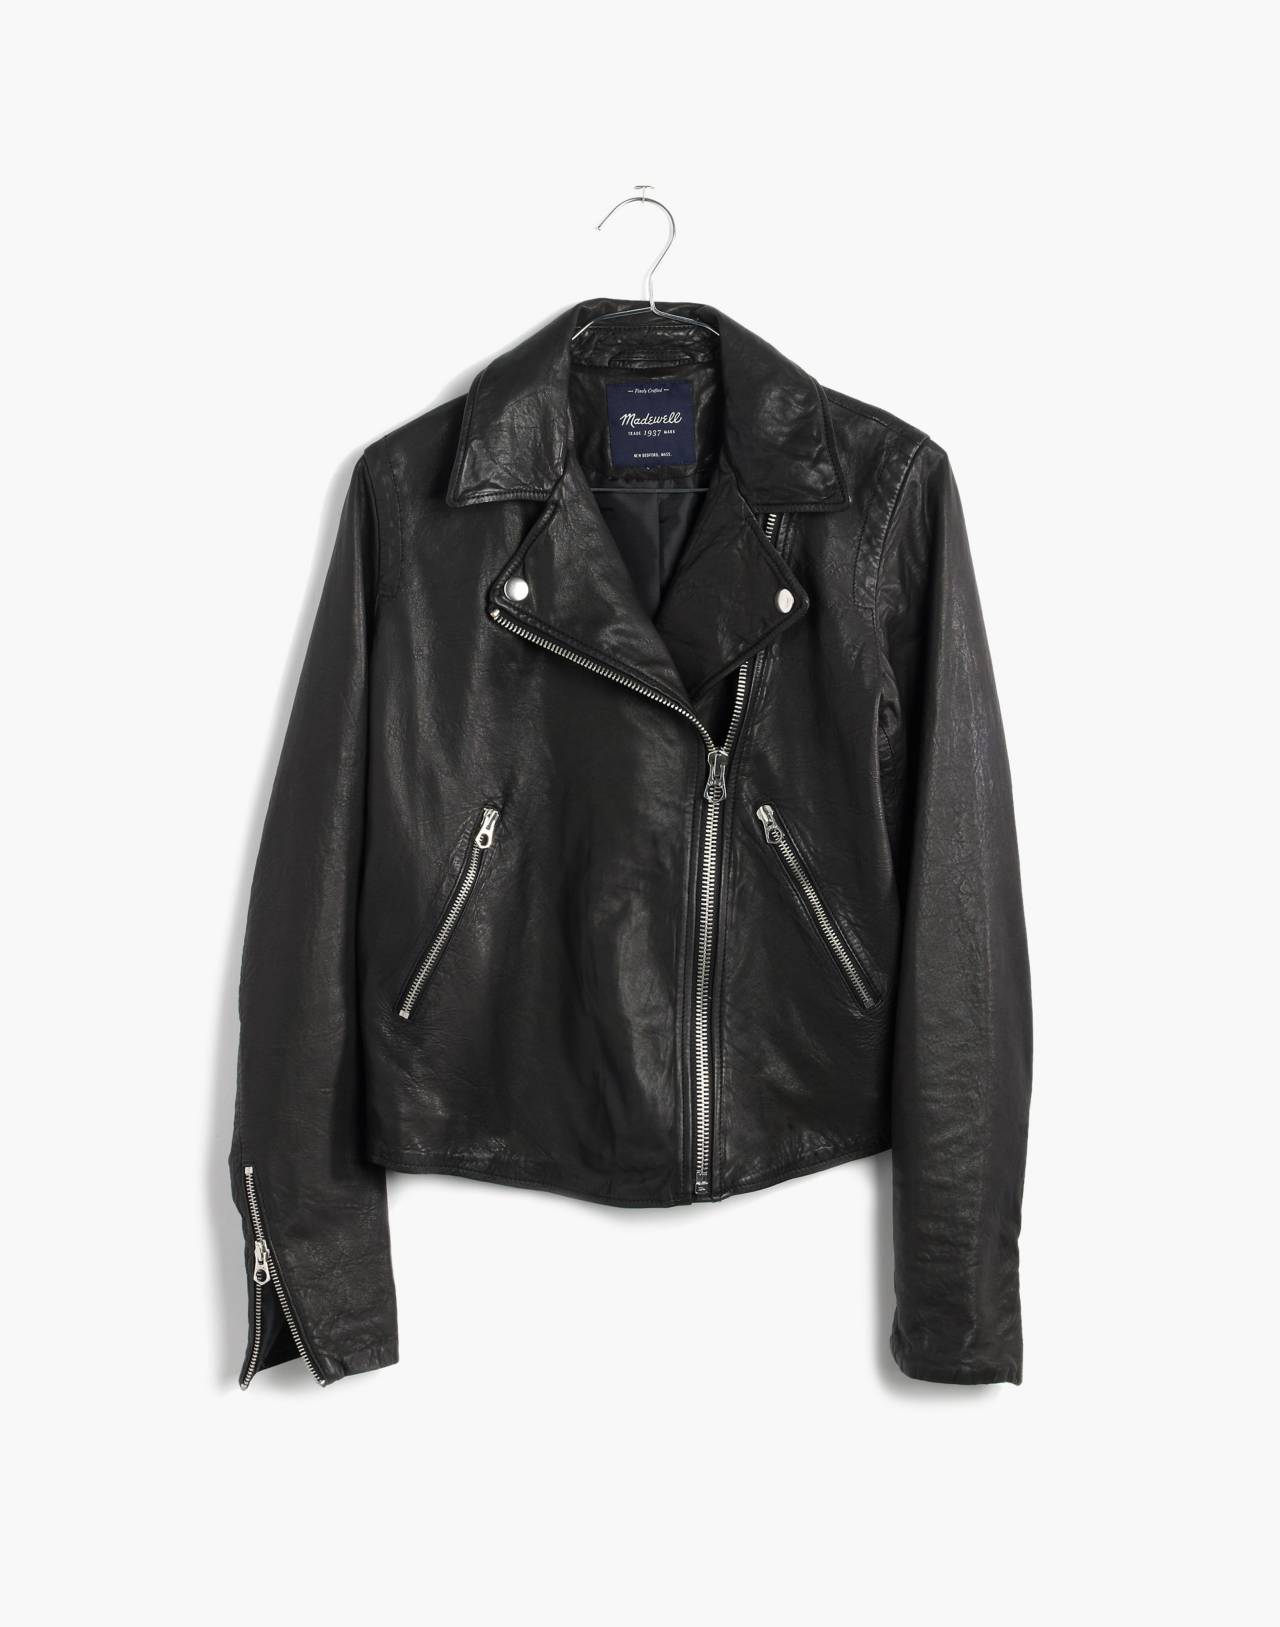 Washed Leather Motorcycle Jacket in true black image 4